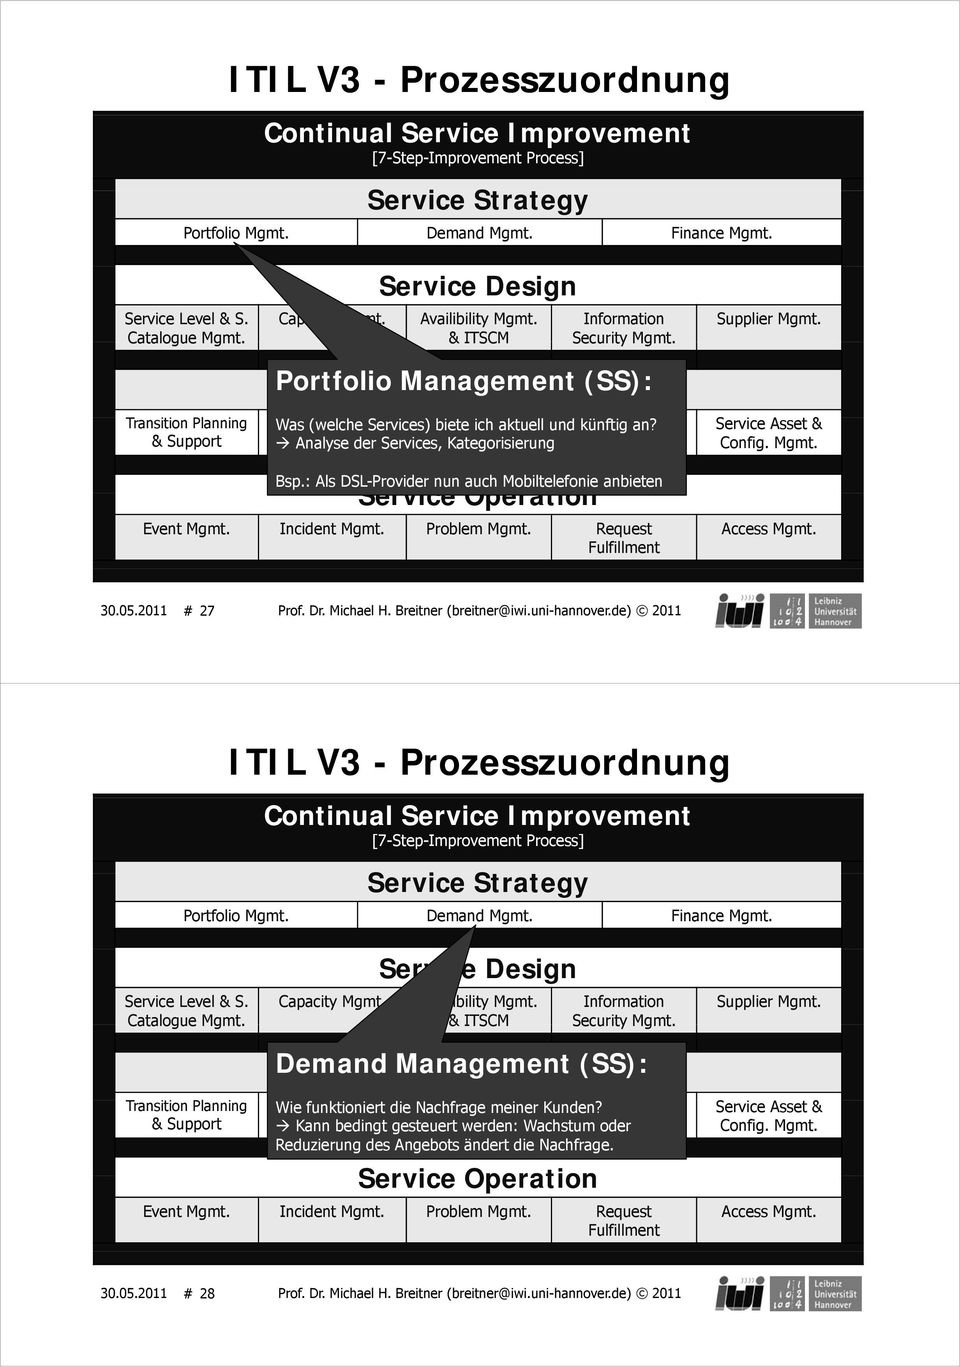 uni-hannover.de) 2011 ITIL V3 - Prozesszuordnung Demand Service Management Transition (SS): Change Wie funktioniert & Release die Nachfrage Service Validation ld meiner Kunden? Knowledge Mgmt.